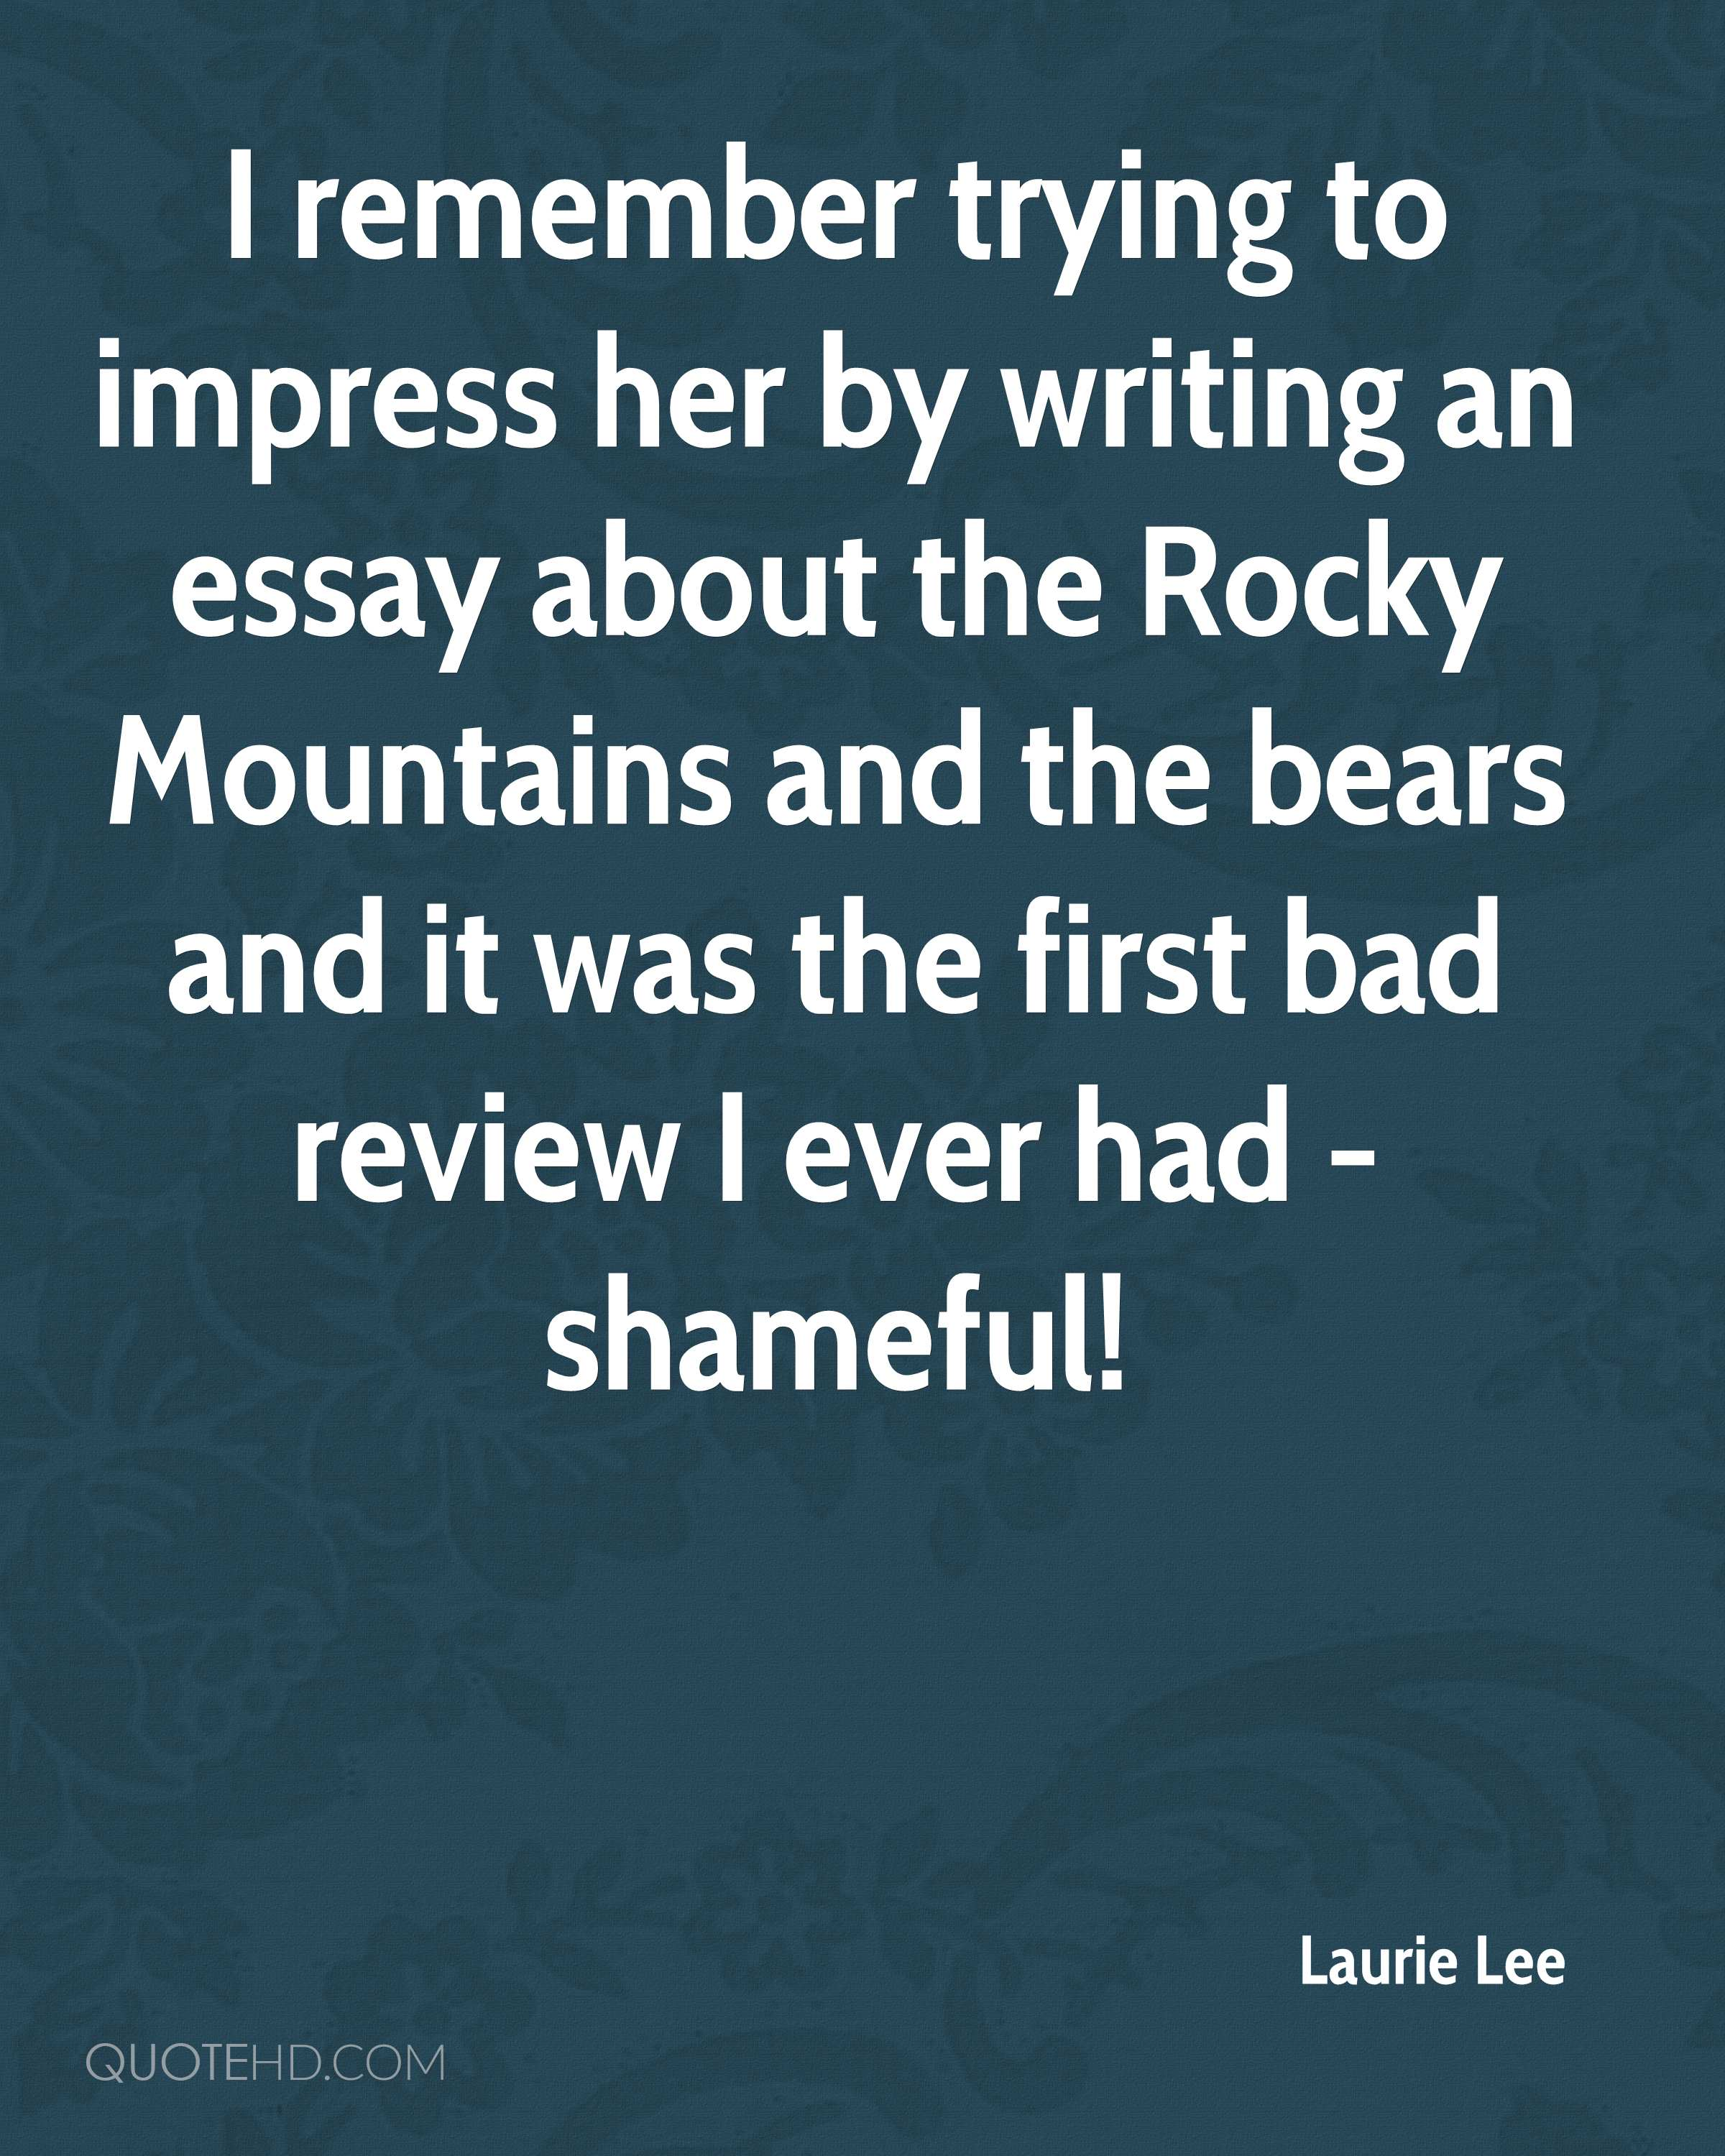 I remember trying to impress her by writing an essay about the Rocky Mountains and the bears and it was the first bad review I ever had - shameful!